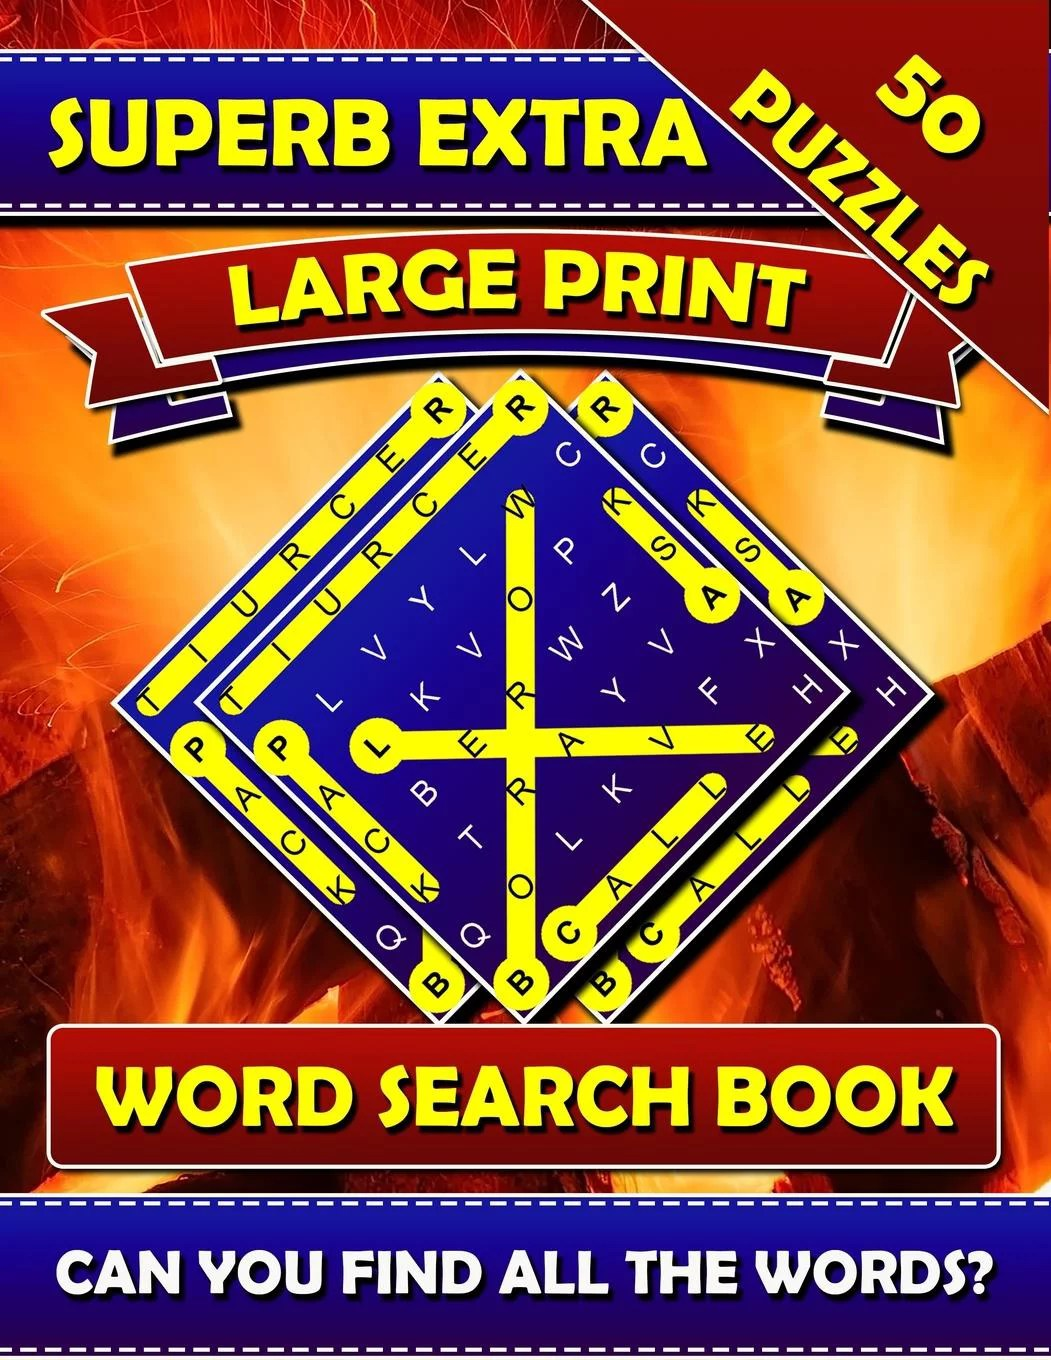 Superb Extra Large Print Word Search Books Big Font Books